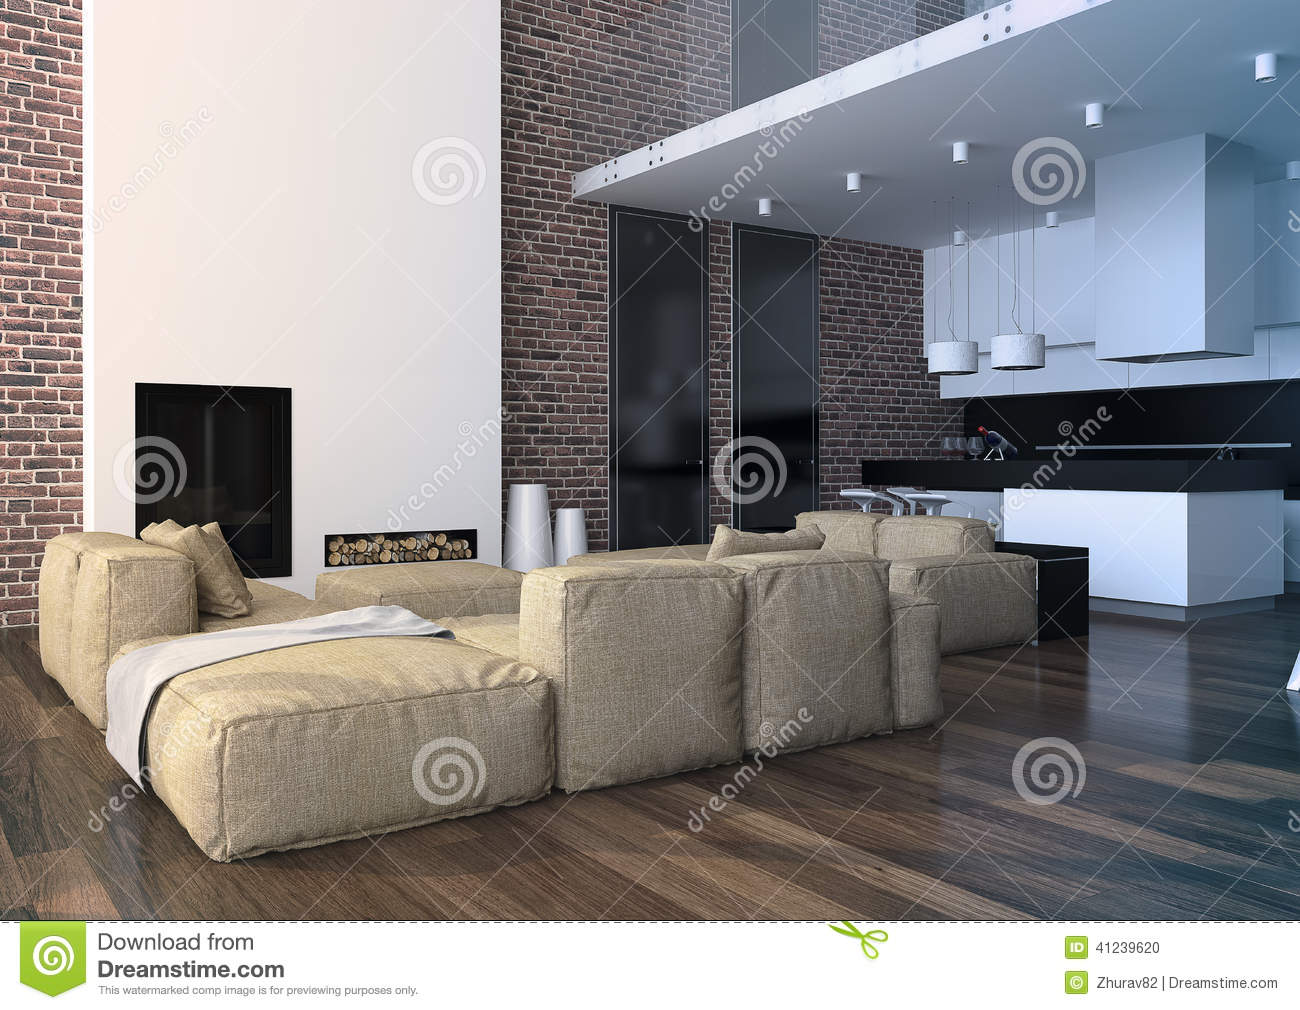 Modern loft living room interior stock photo image of for Image of a room